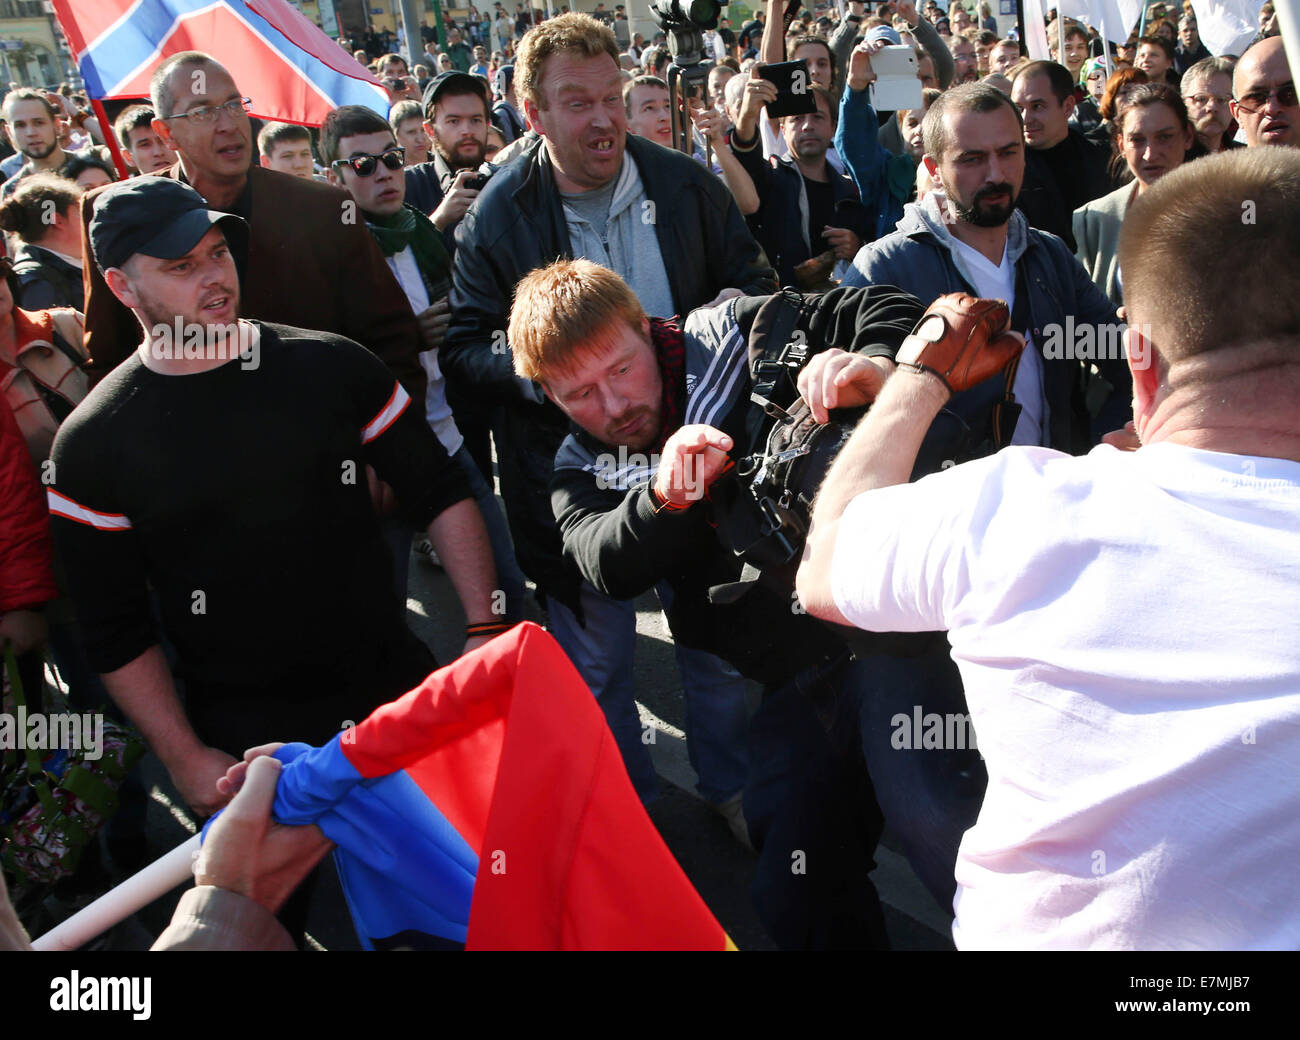 ITAR-TASS: MOSCOW, RUSSIA. SEPTEMBER 21, 2014. A fight during the Peace March against the war in Ukraine. (Photo Stock Photo